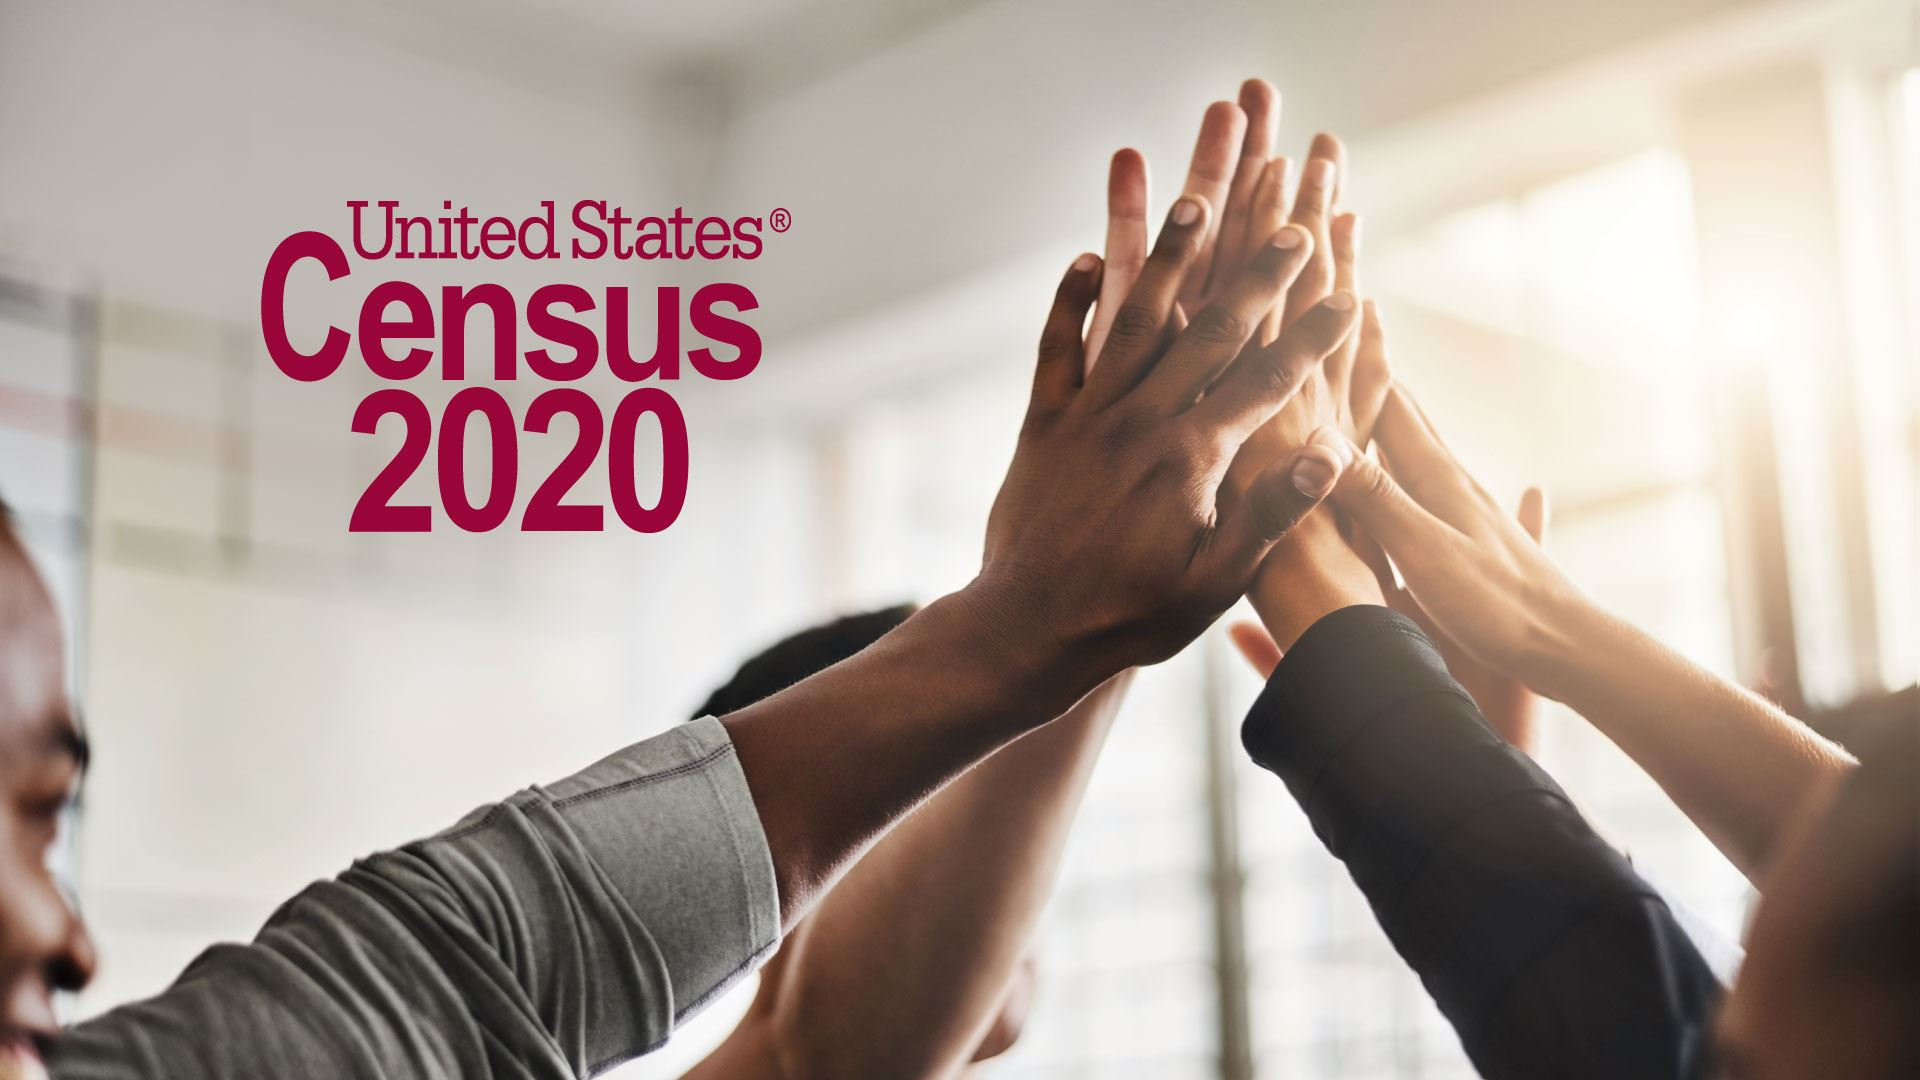 Census image showing hands